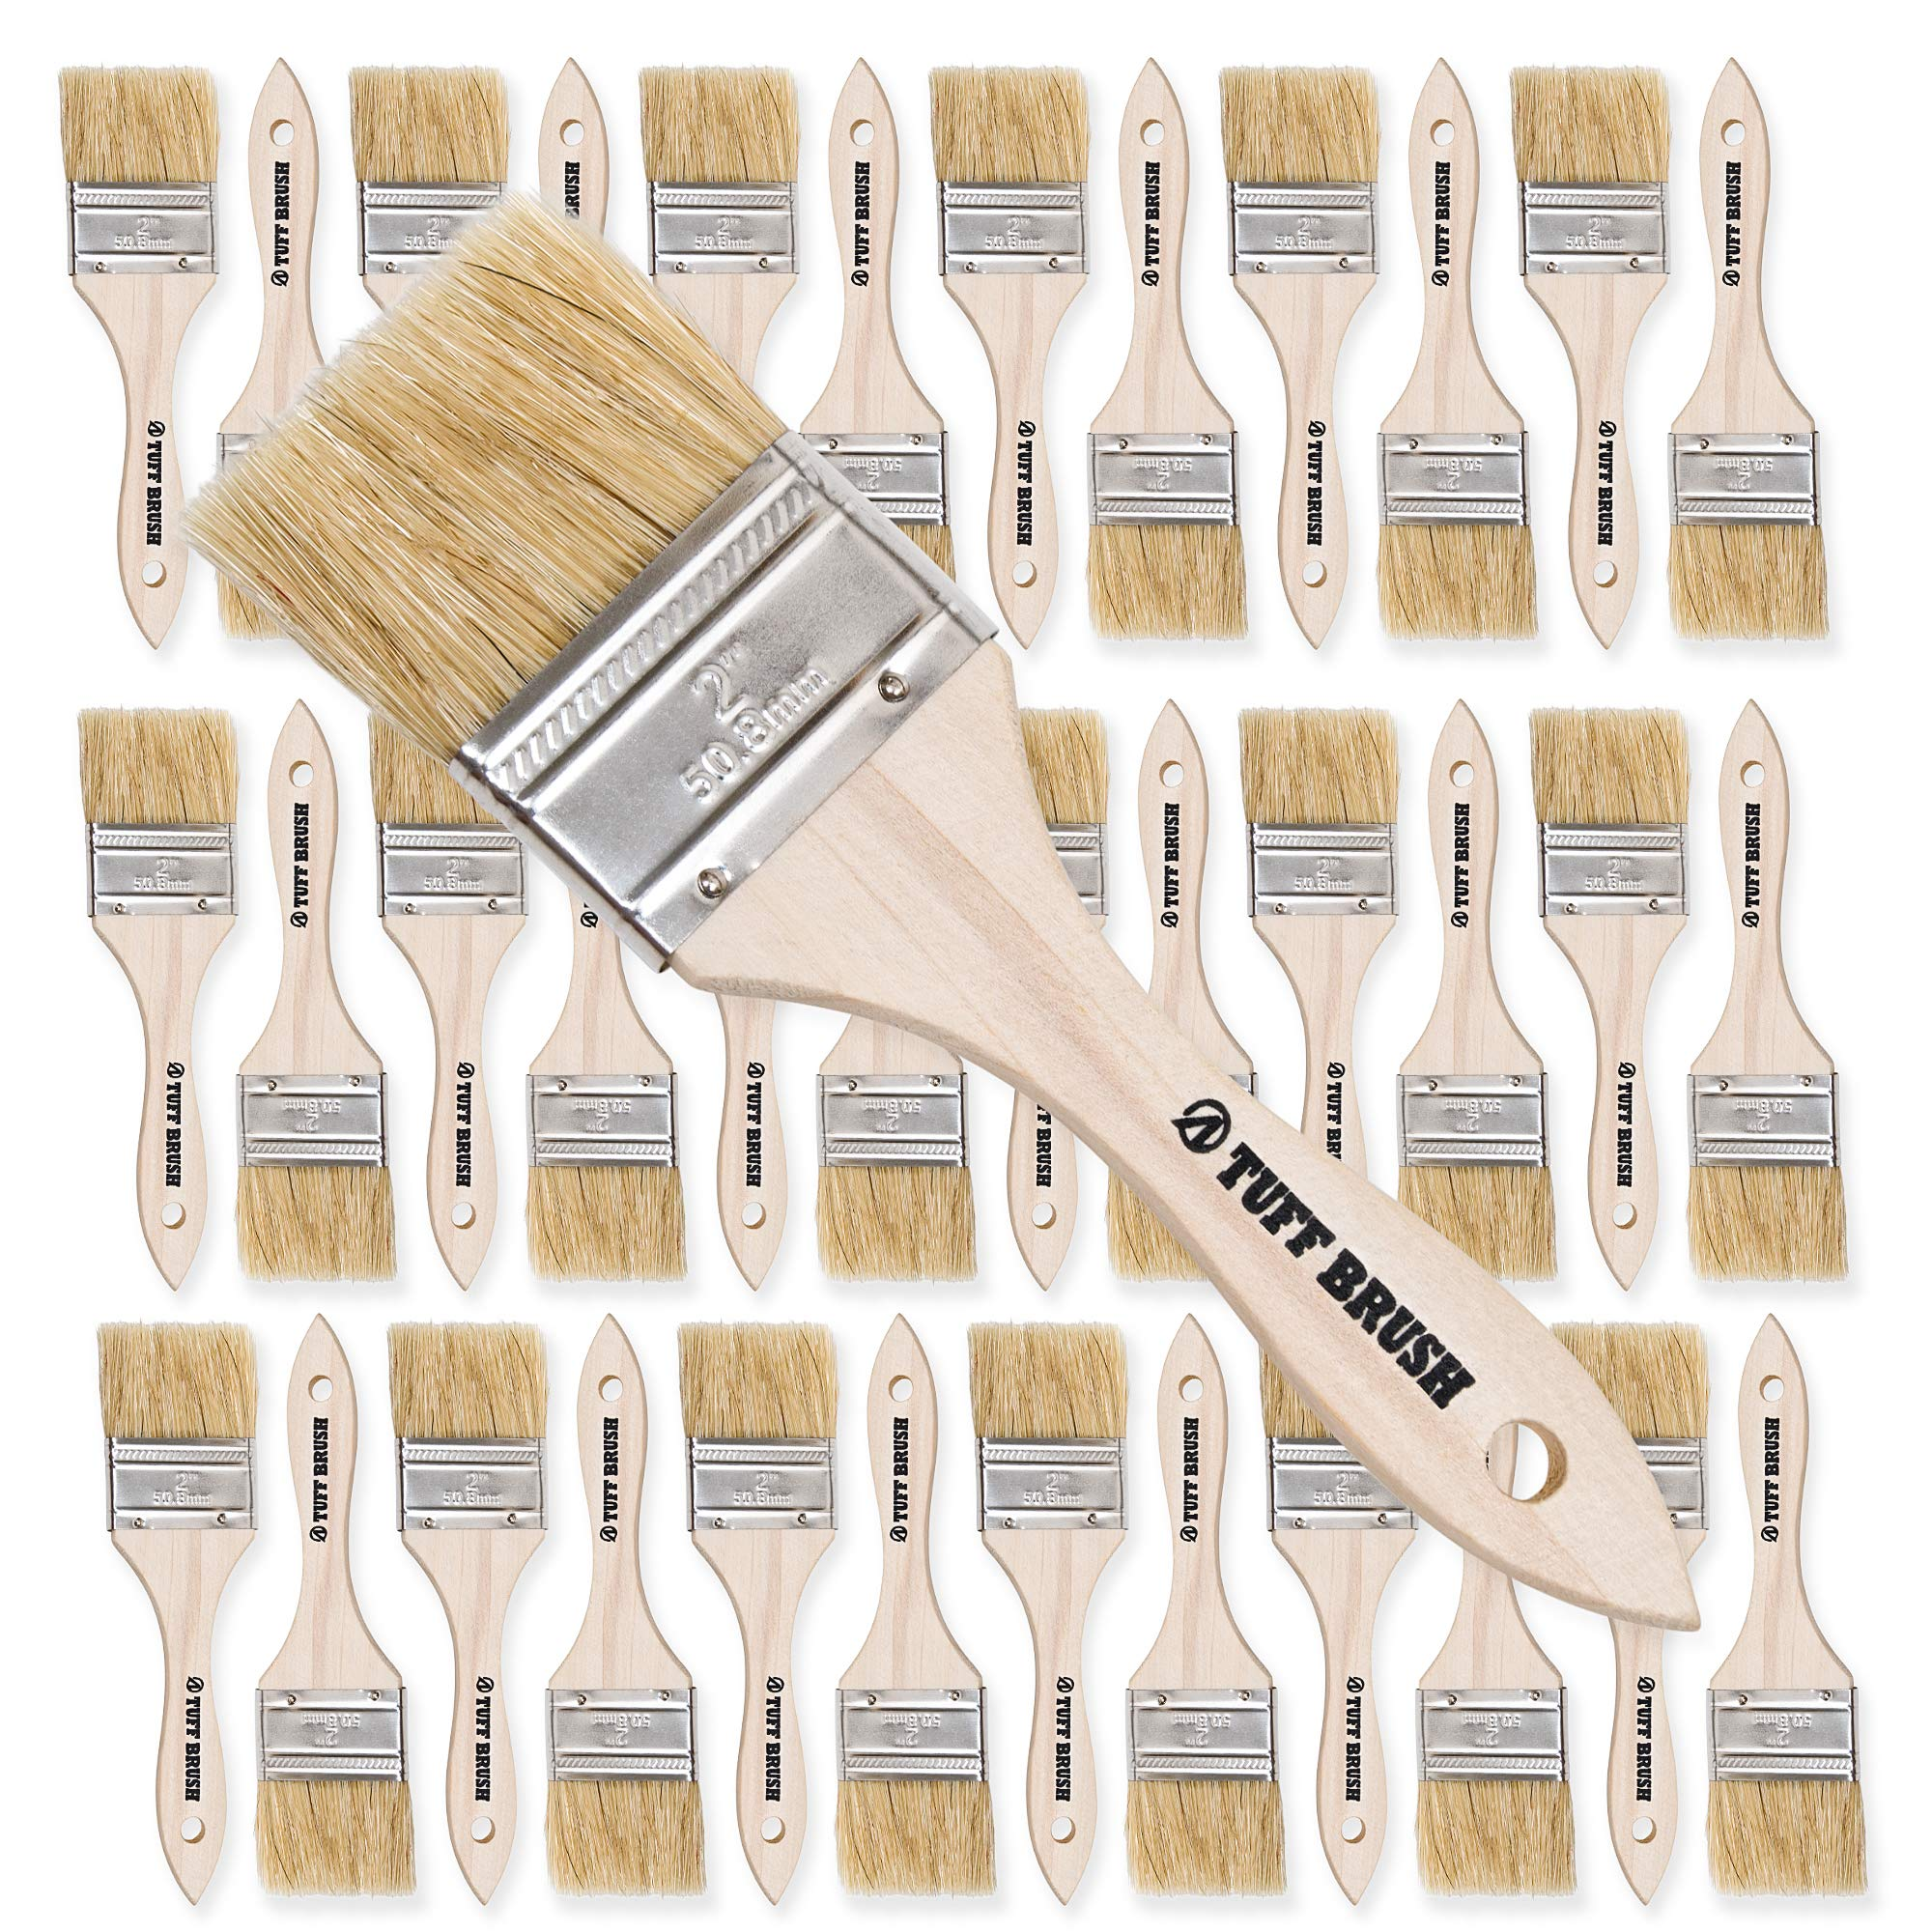 TUFF BRUSH - 50 Pack of 2 inch Chip Brushes for Paint, Stains, Varnishes, Glues, Resins, and Gesso by TUFF BRUSH